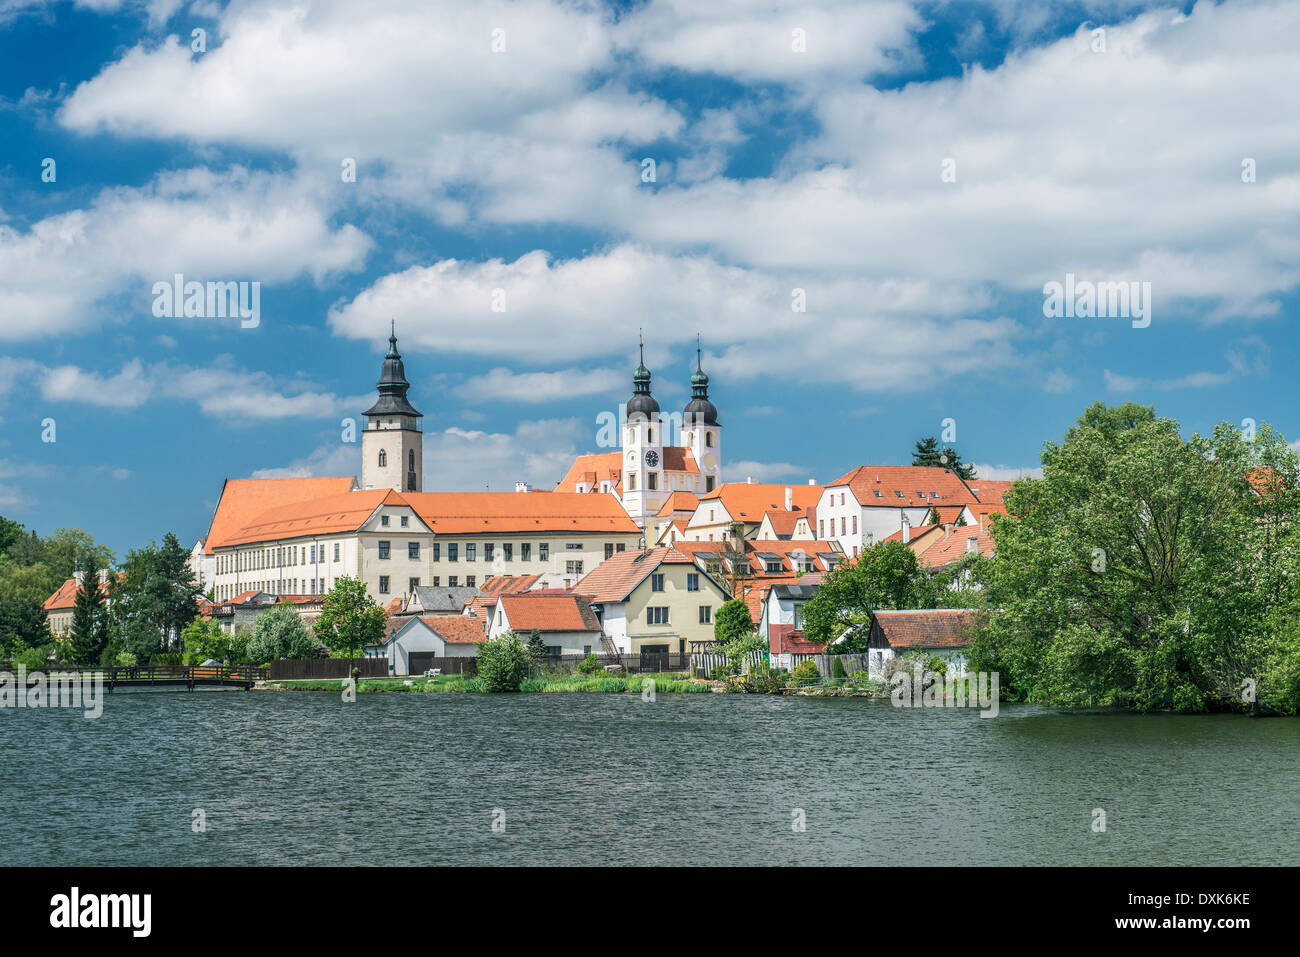 Strahov Monastery on lake, Prague, Central Bohemia, Czech Republic - Stock Image